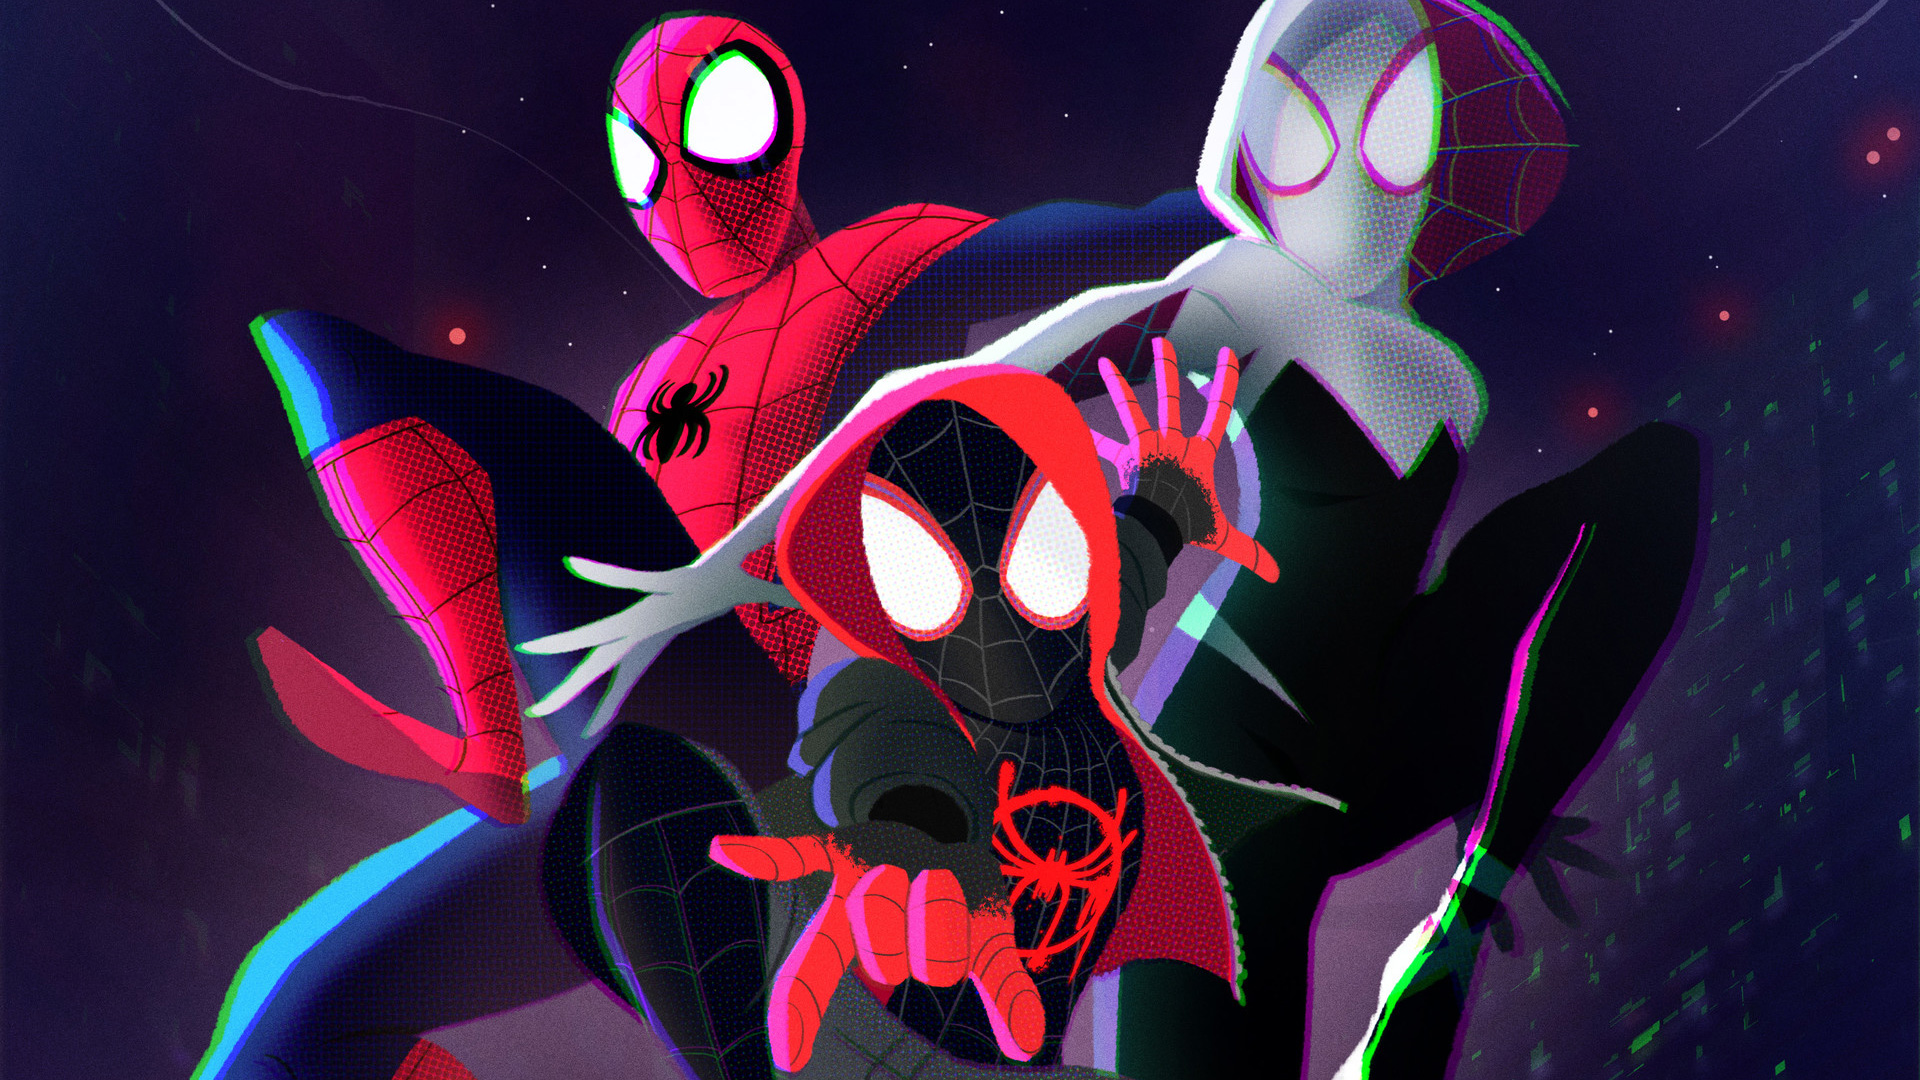 Free Download Spider Man Into The Spider Verse Hd Wallpaper